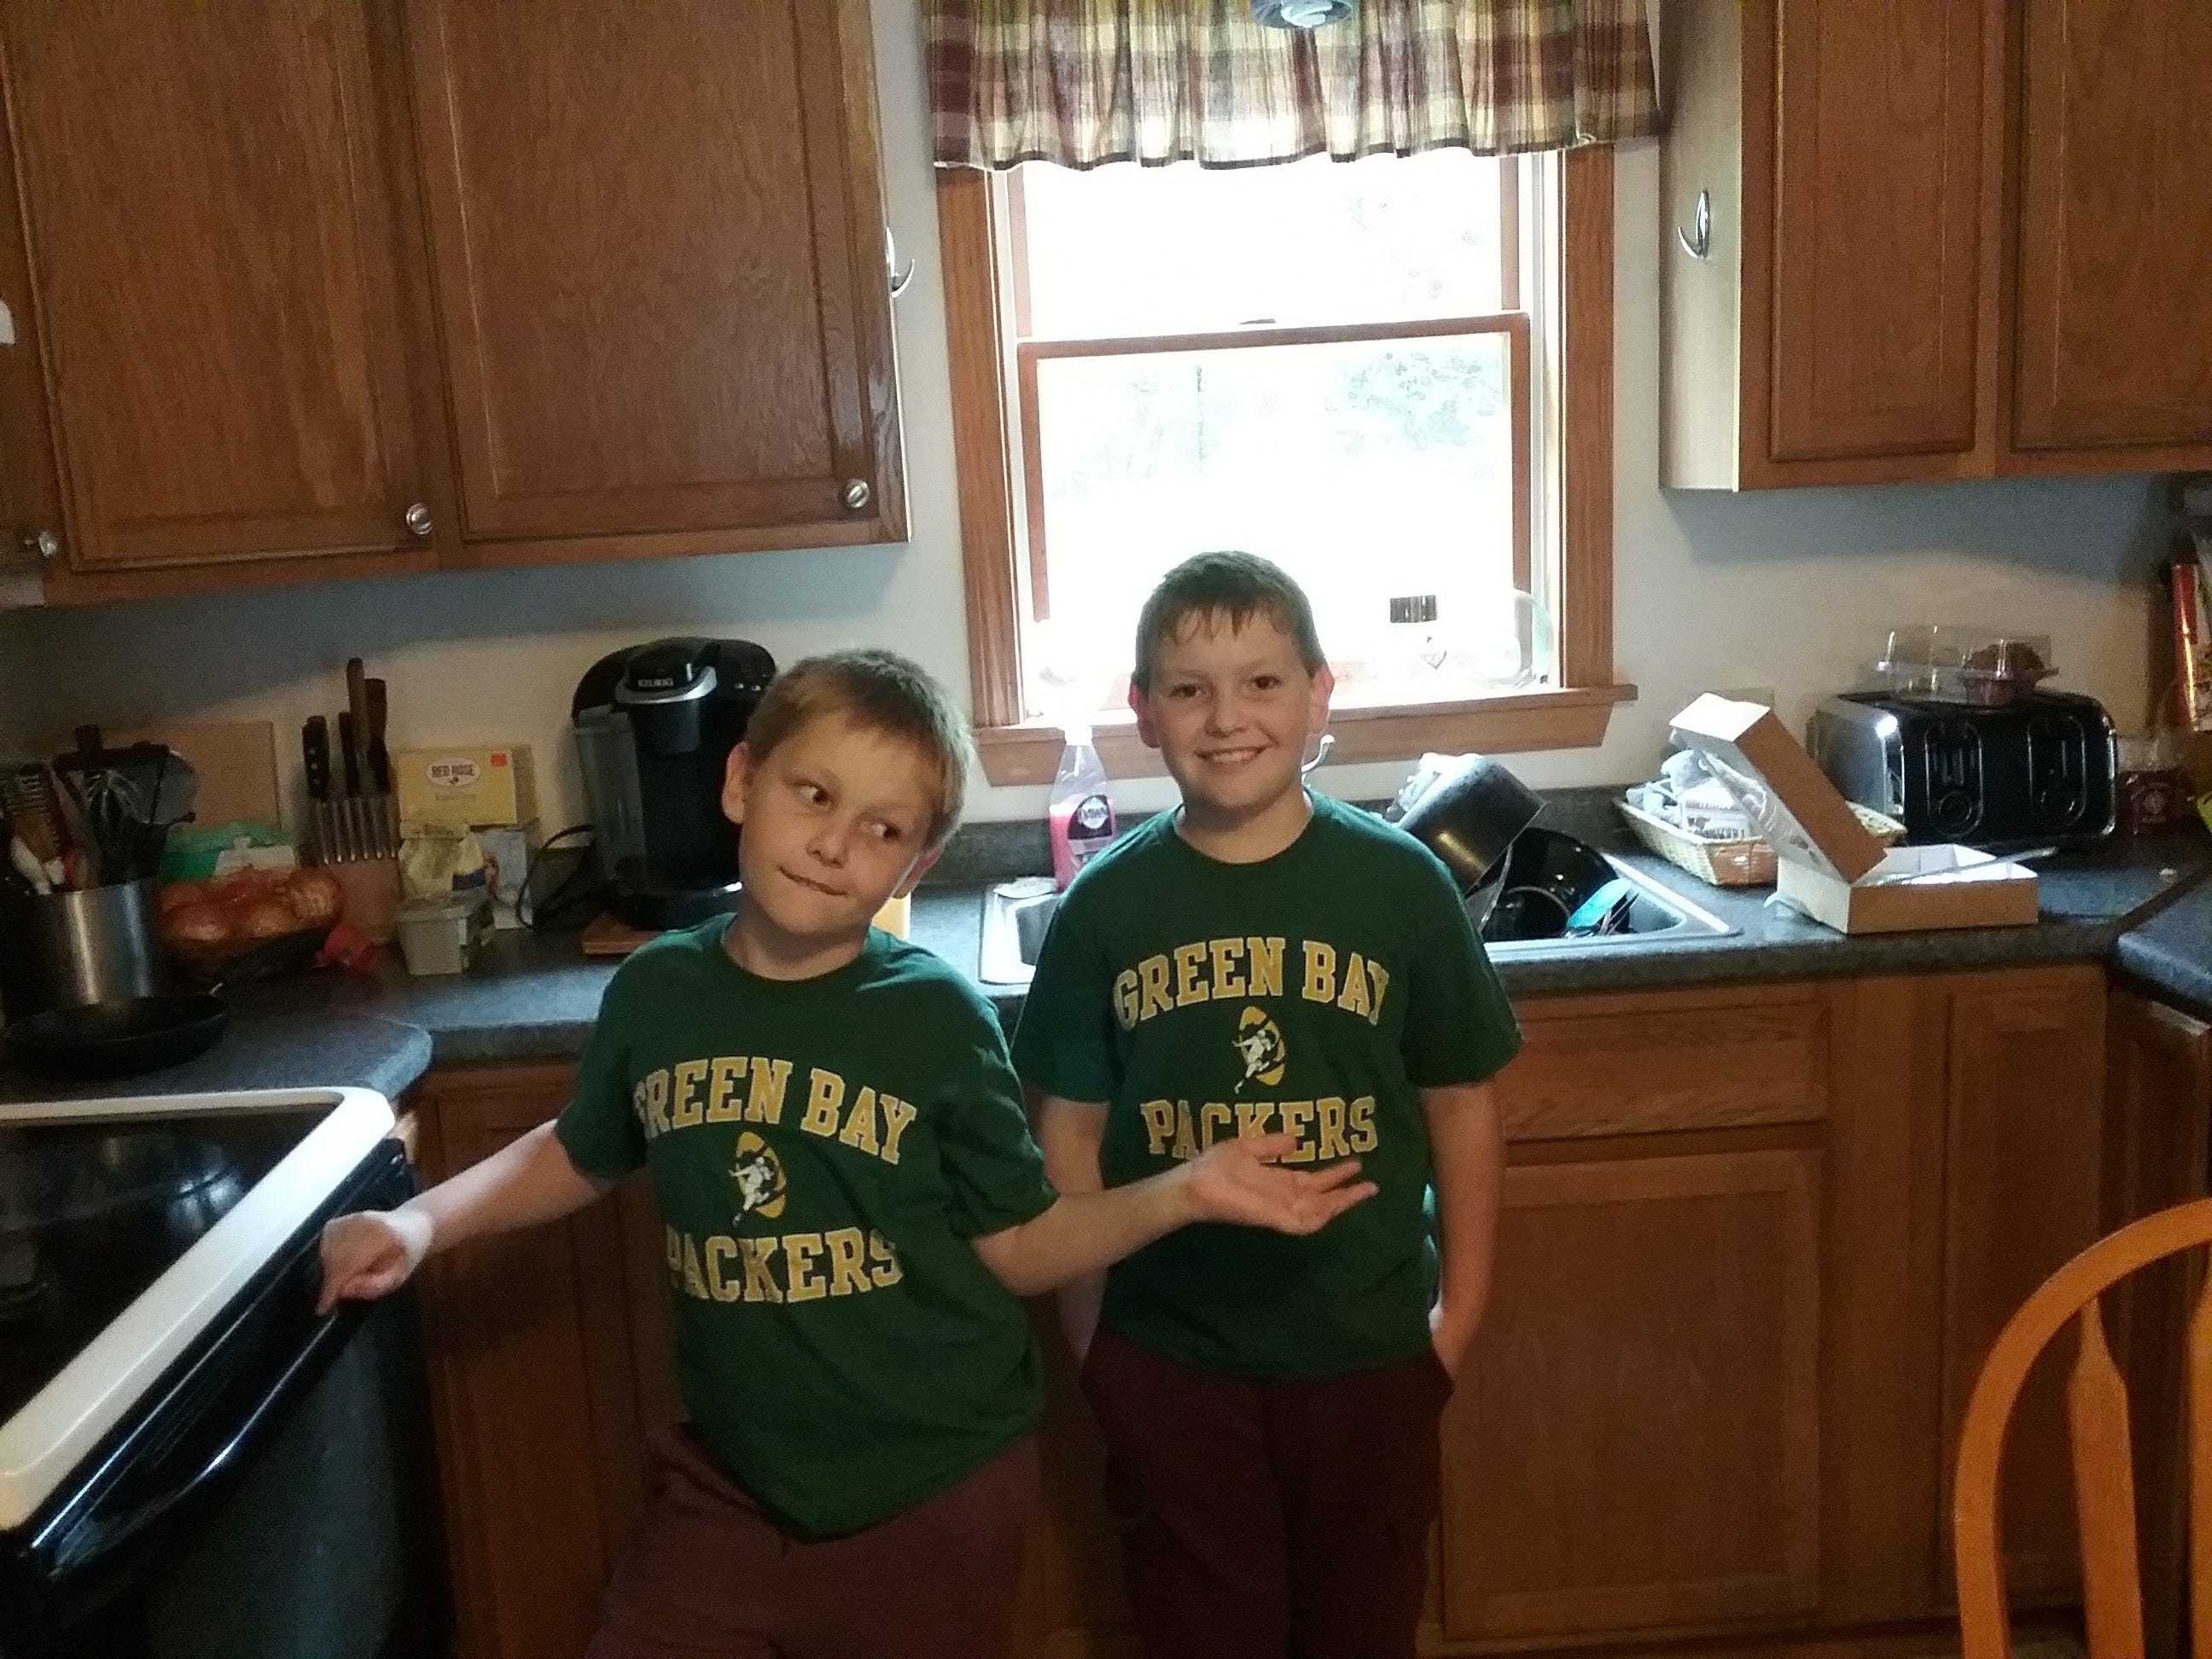 Reader Rick Freeman was thrilled when his grandsons (Owen, left, and Max, right) wanted a Packers shirt - just like the one Rick